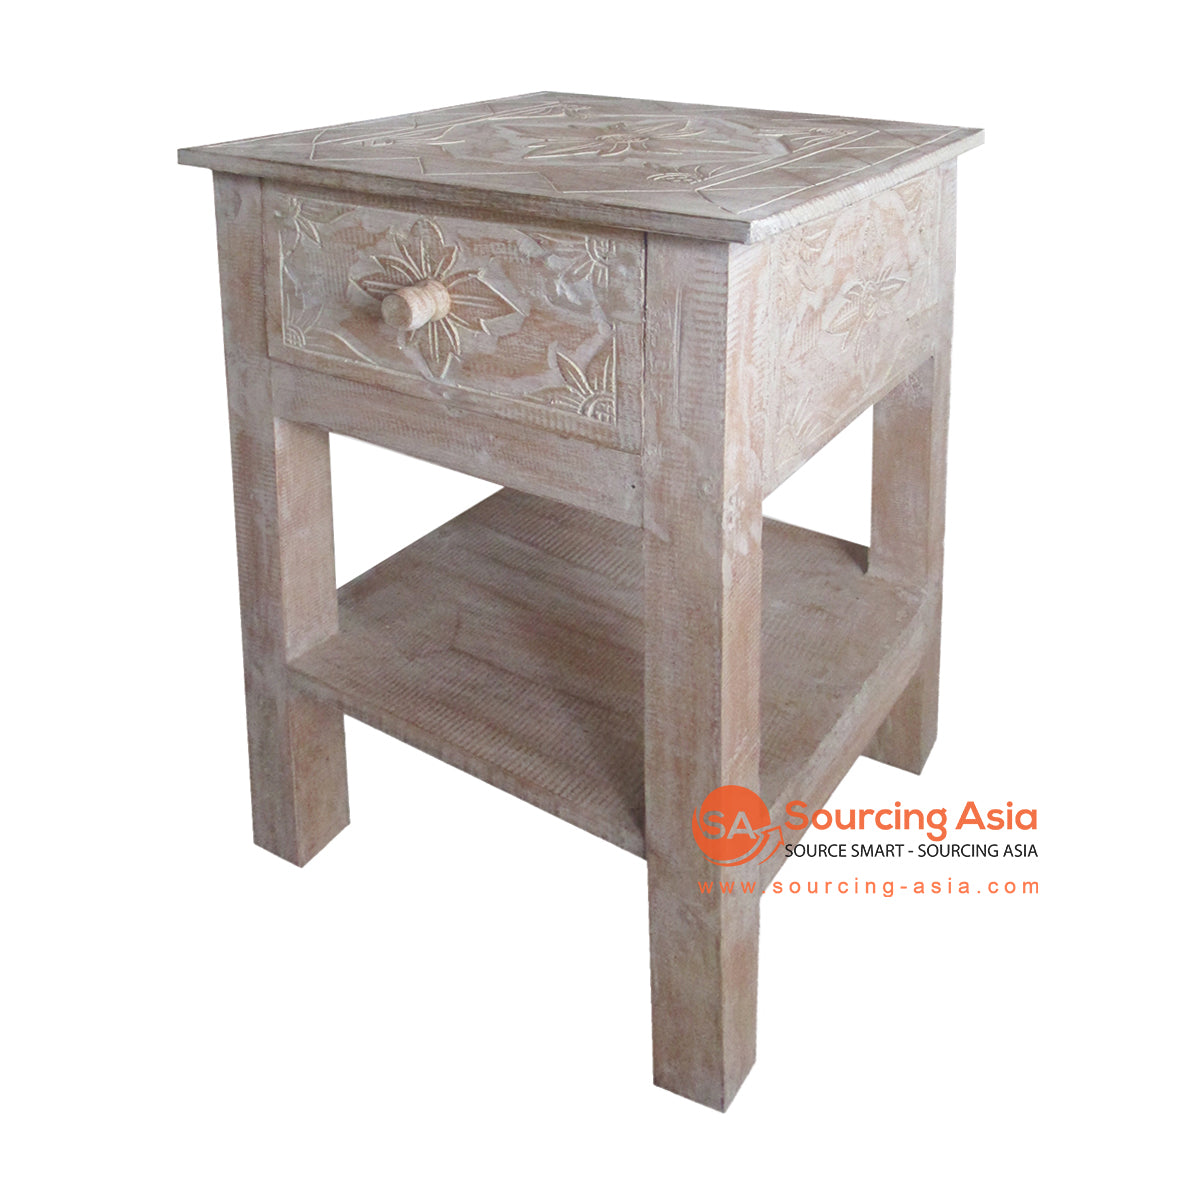 THE080-2 SIDE TABLE 1 DRAWER